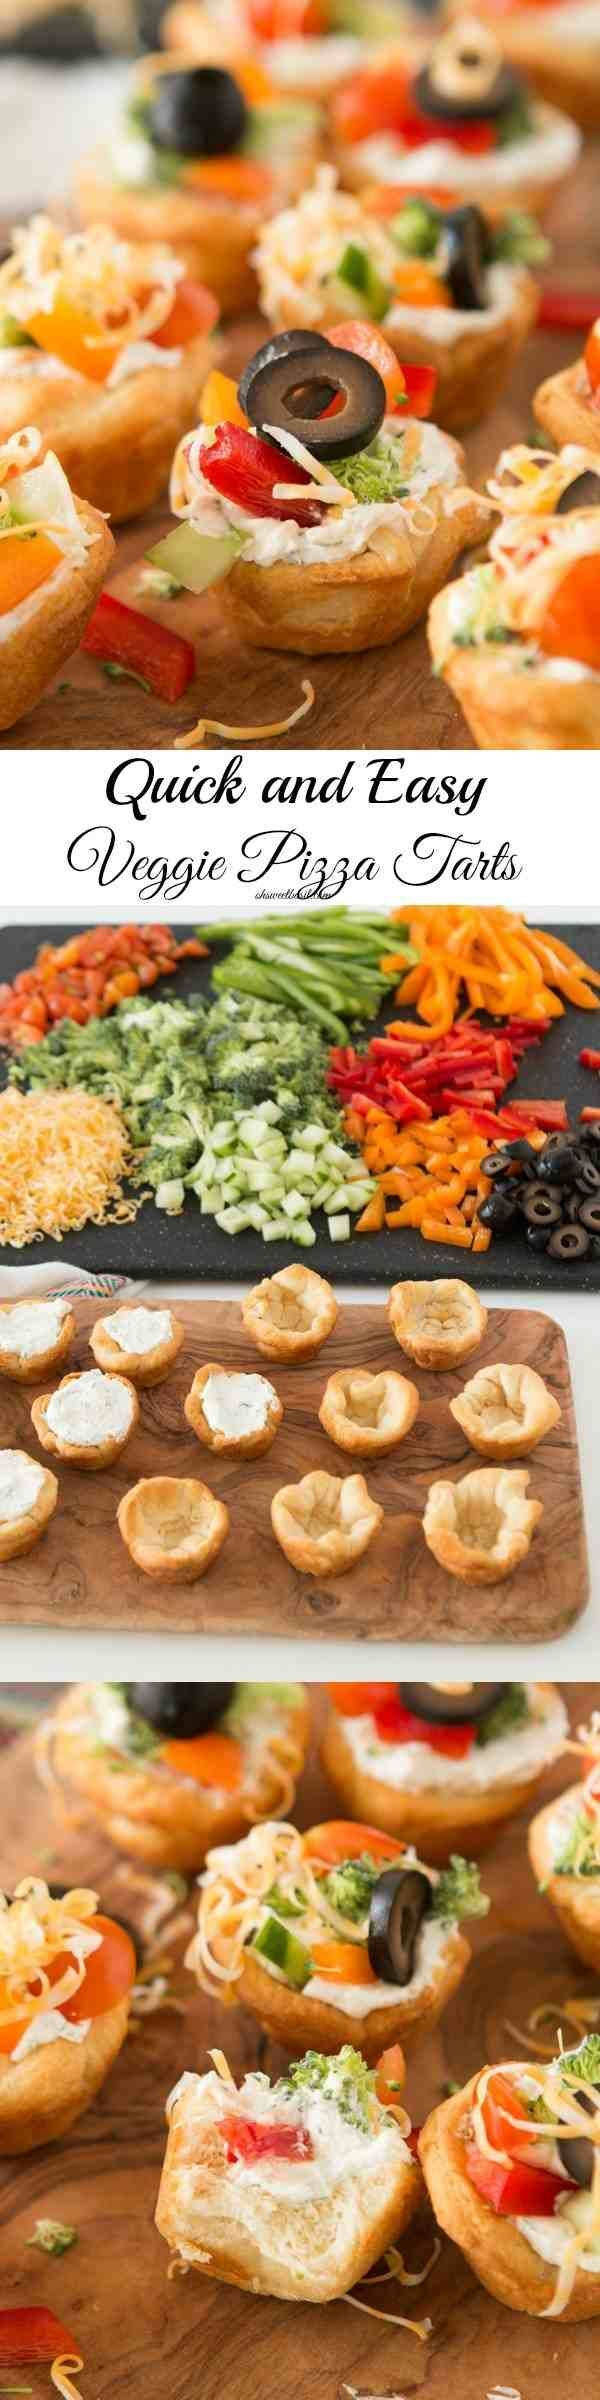 This is the BEST veggie pizza tarts recipe I've found! The filling is so creamy and I can't stop popping them in my mouth! ohsweetbasil.com